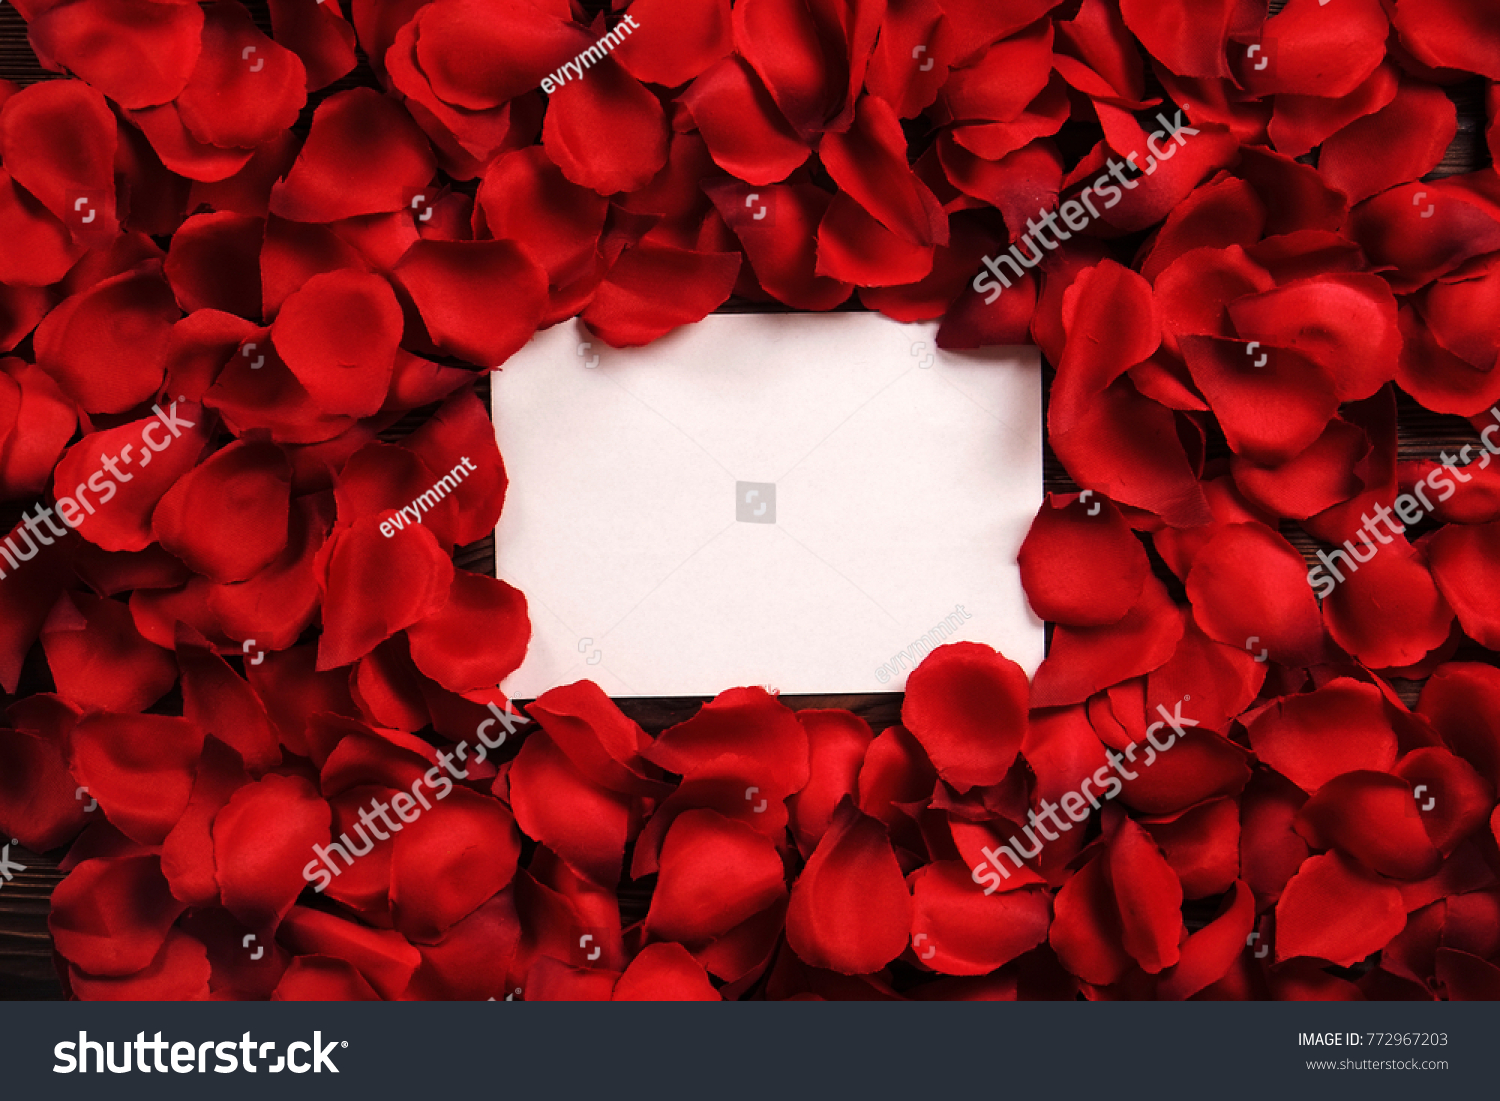 White Blank Card Red Roses Petals Stock Photo (Royalty Free ...